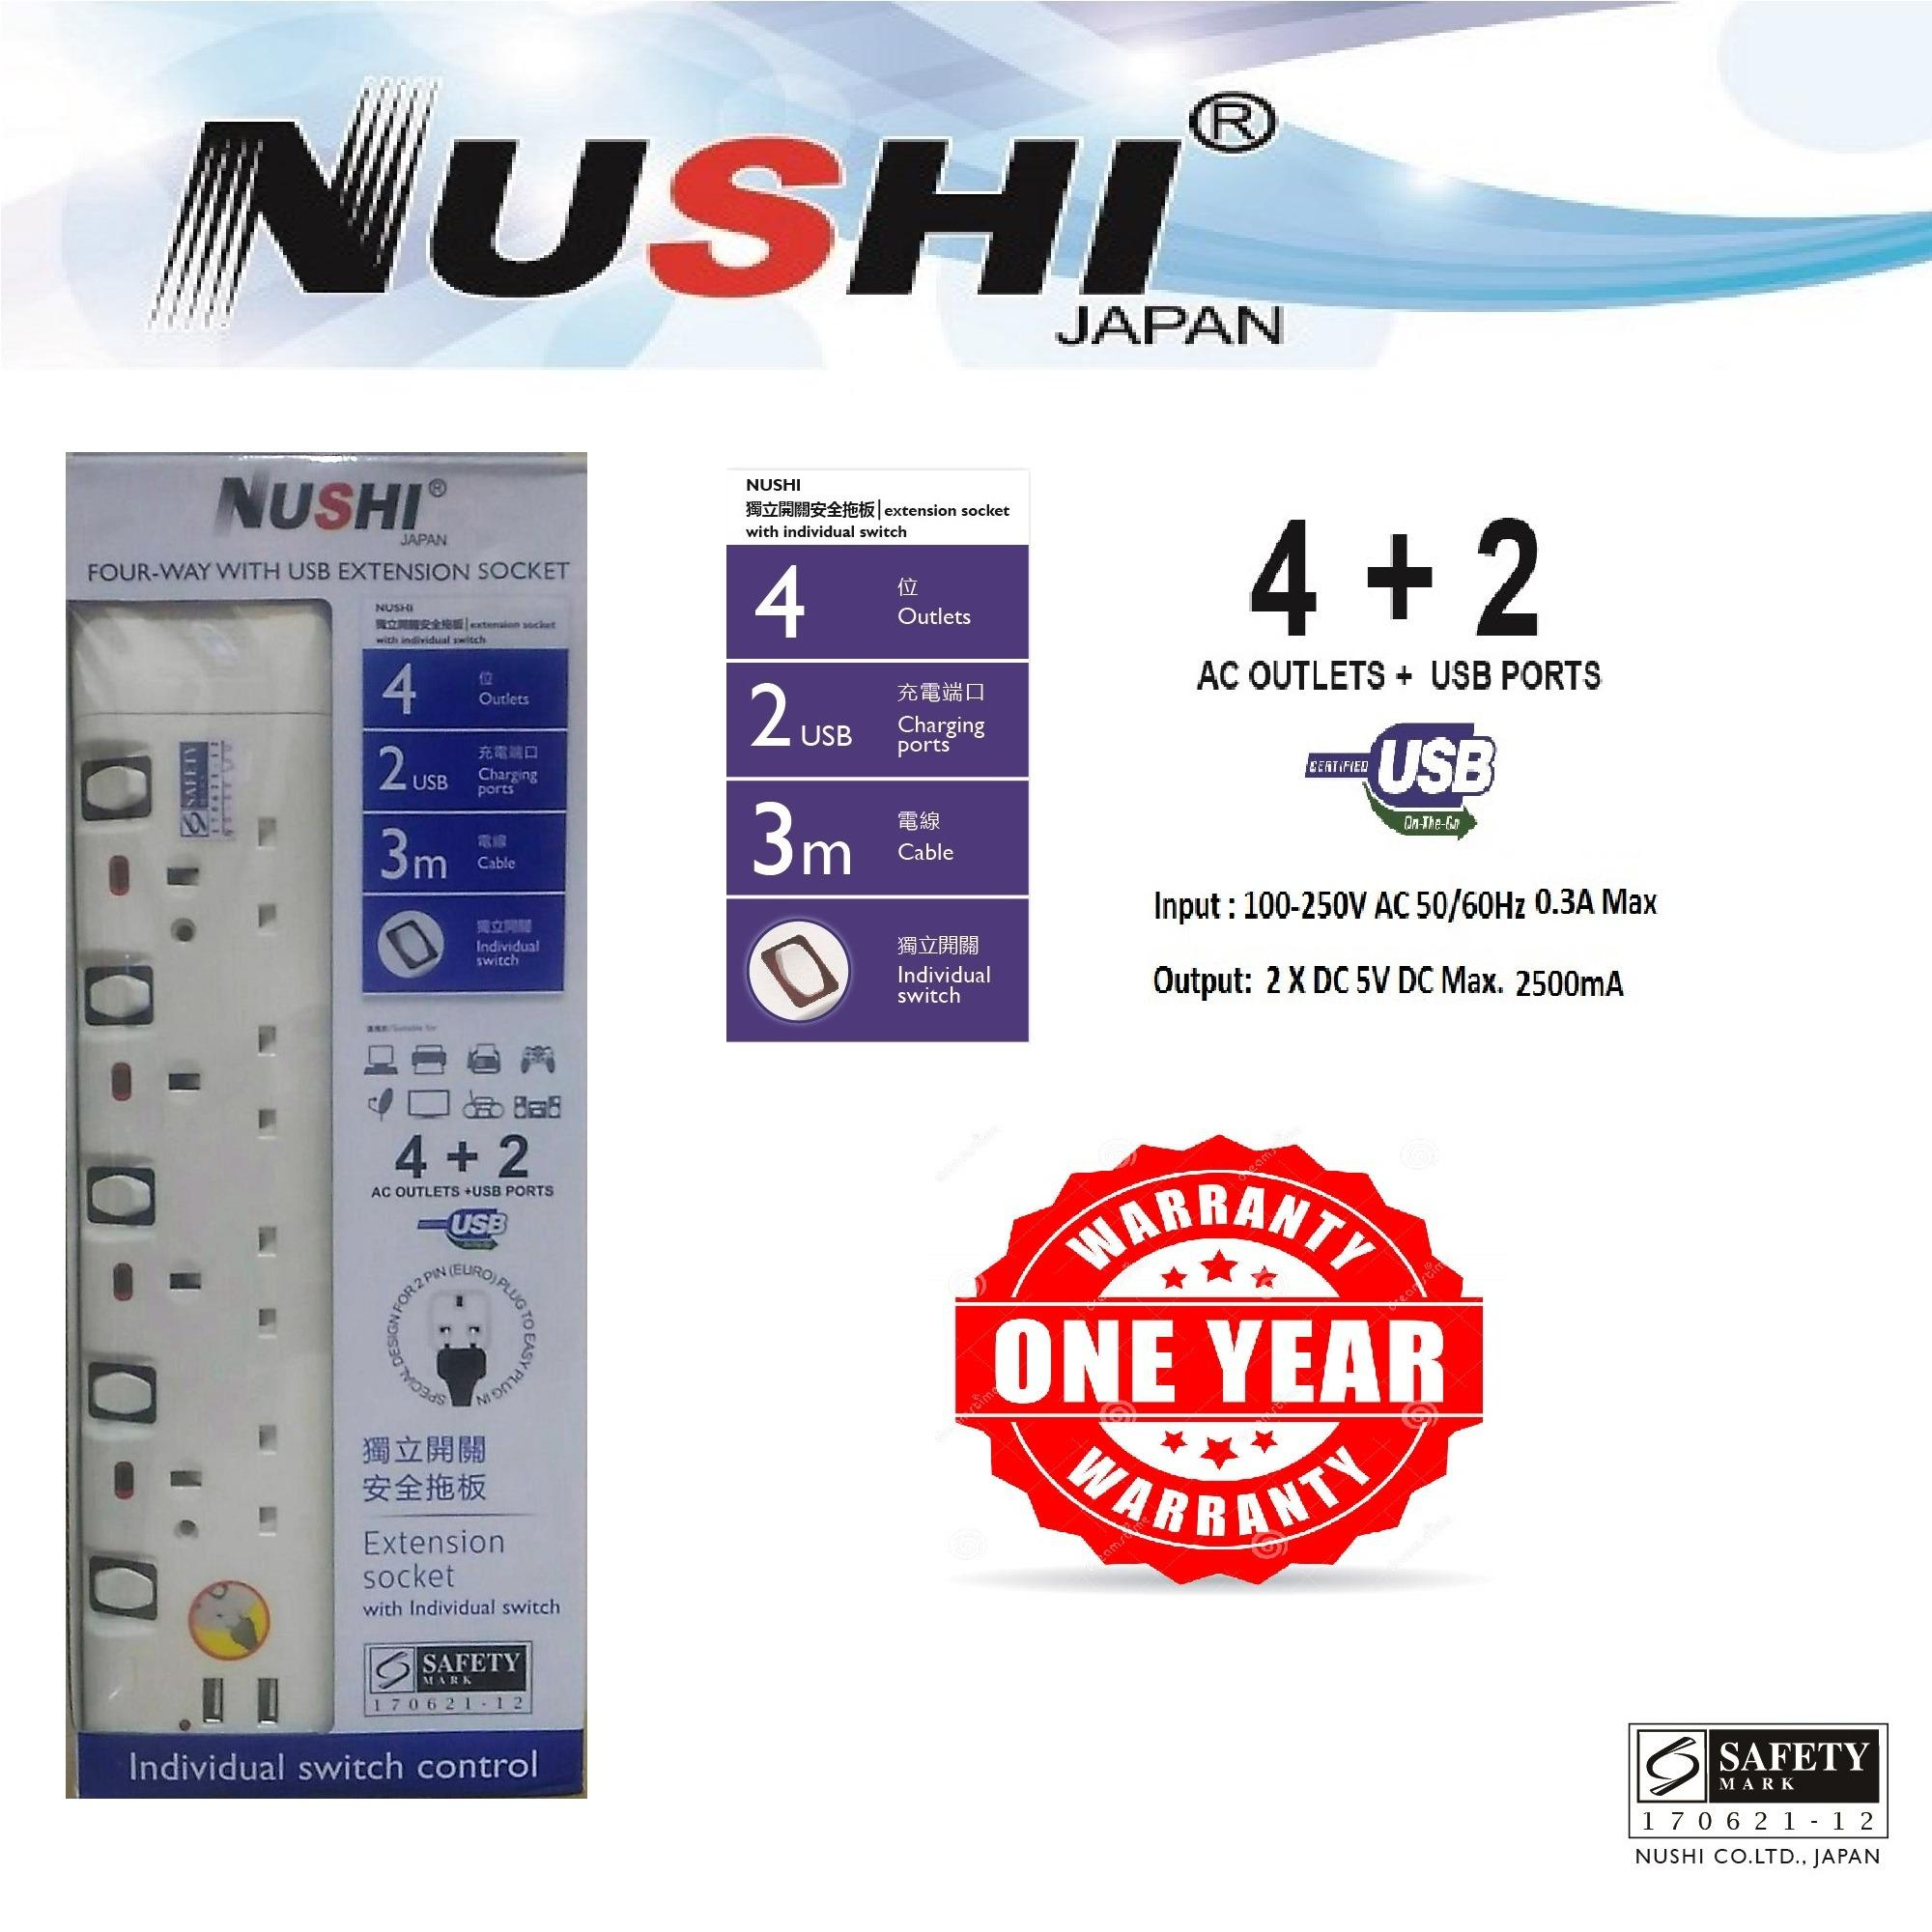 How Do I Get Nushi Four Way Extension Socket With Usb One Year Warranty